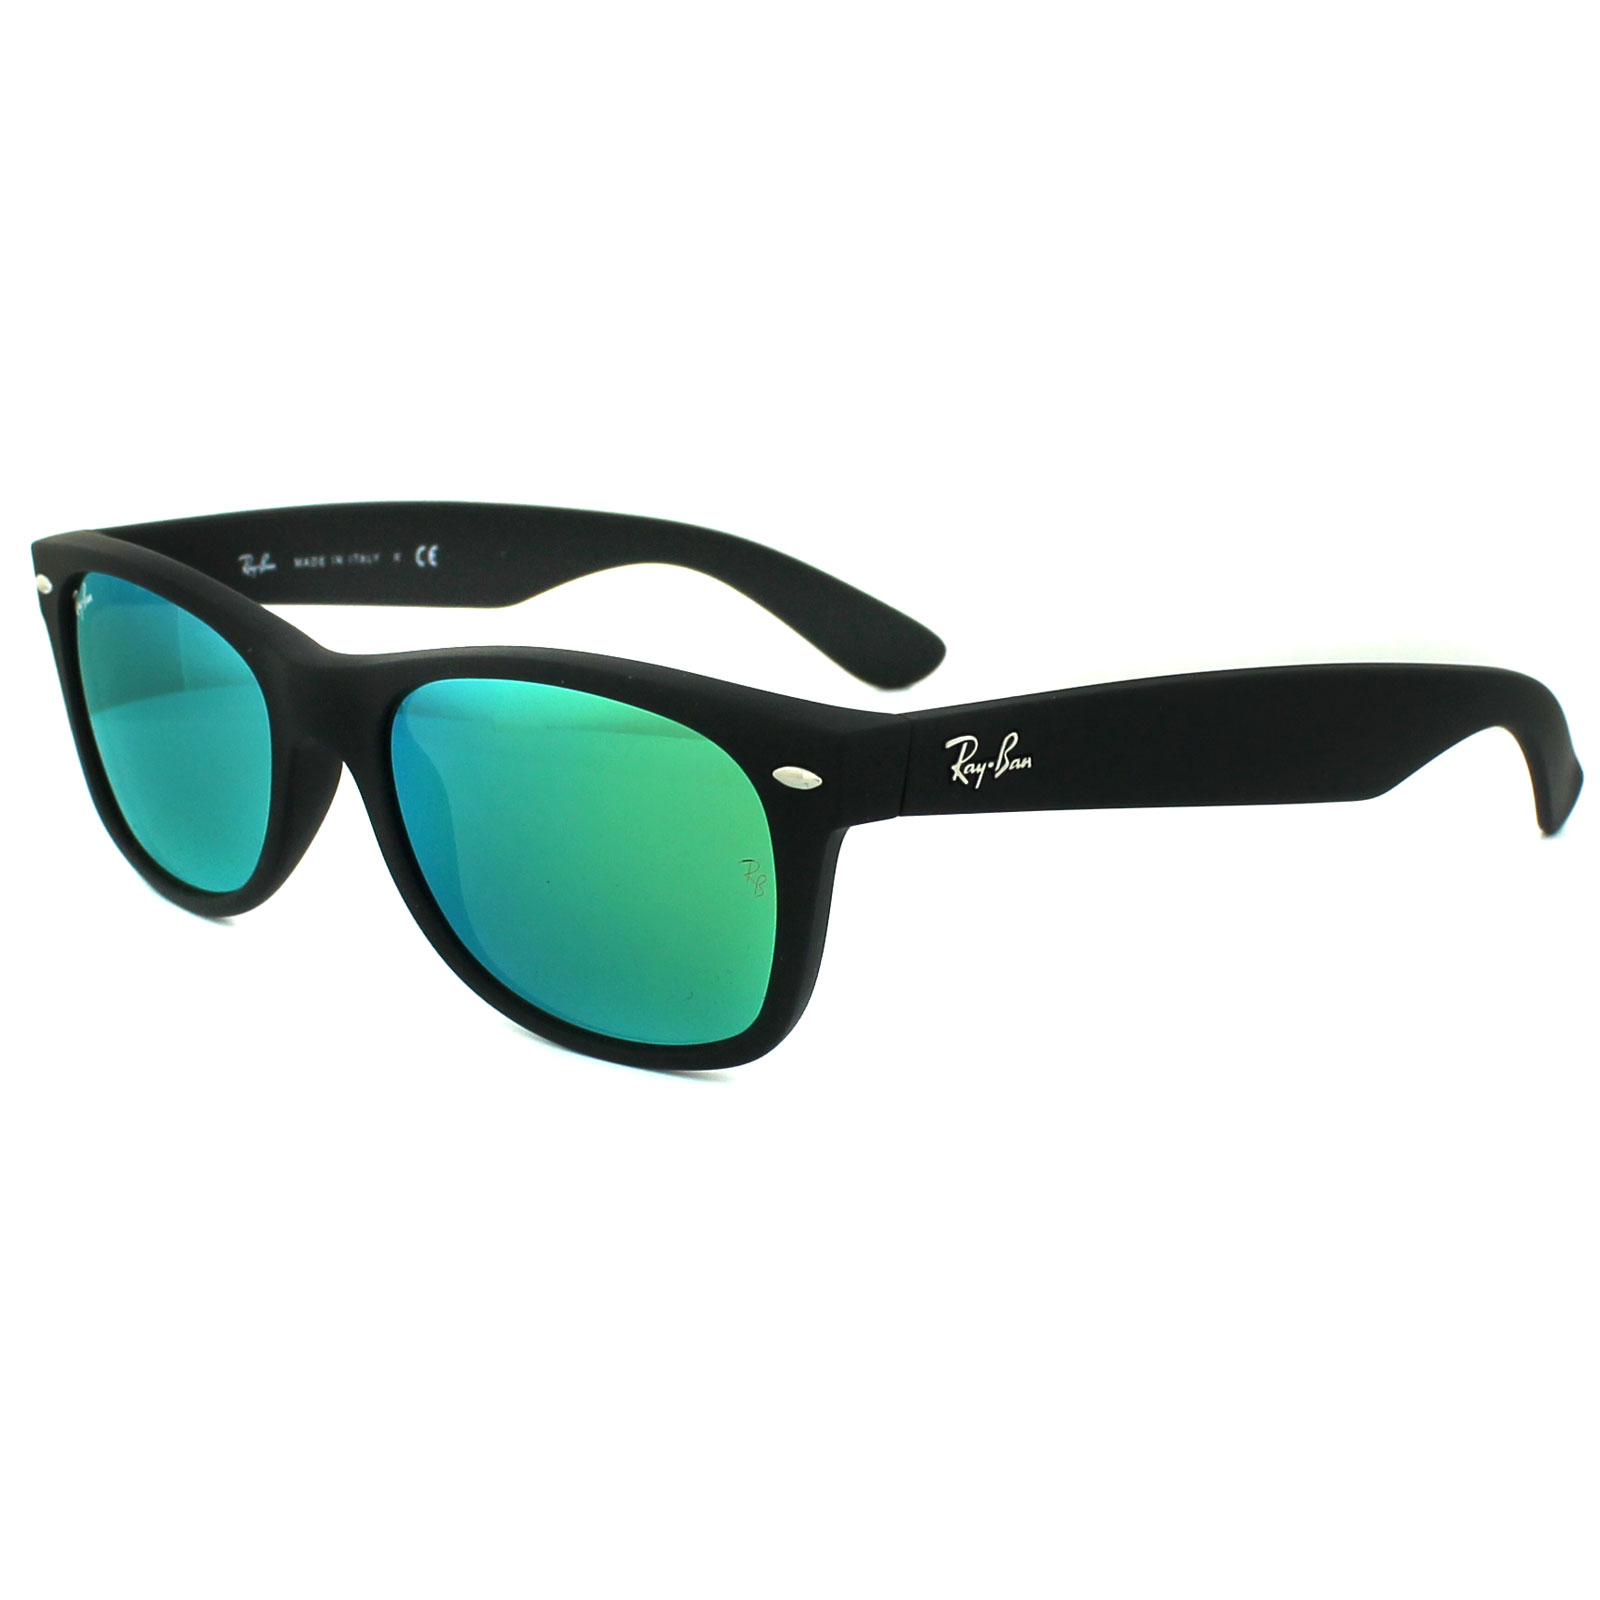 6c2be21316 Ray Ban New Wayfarer 2132 19 « Heritage Malta